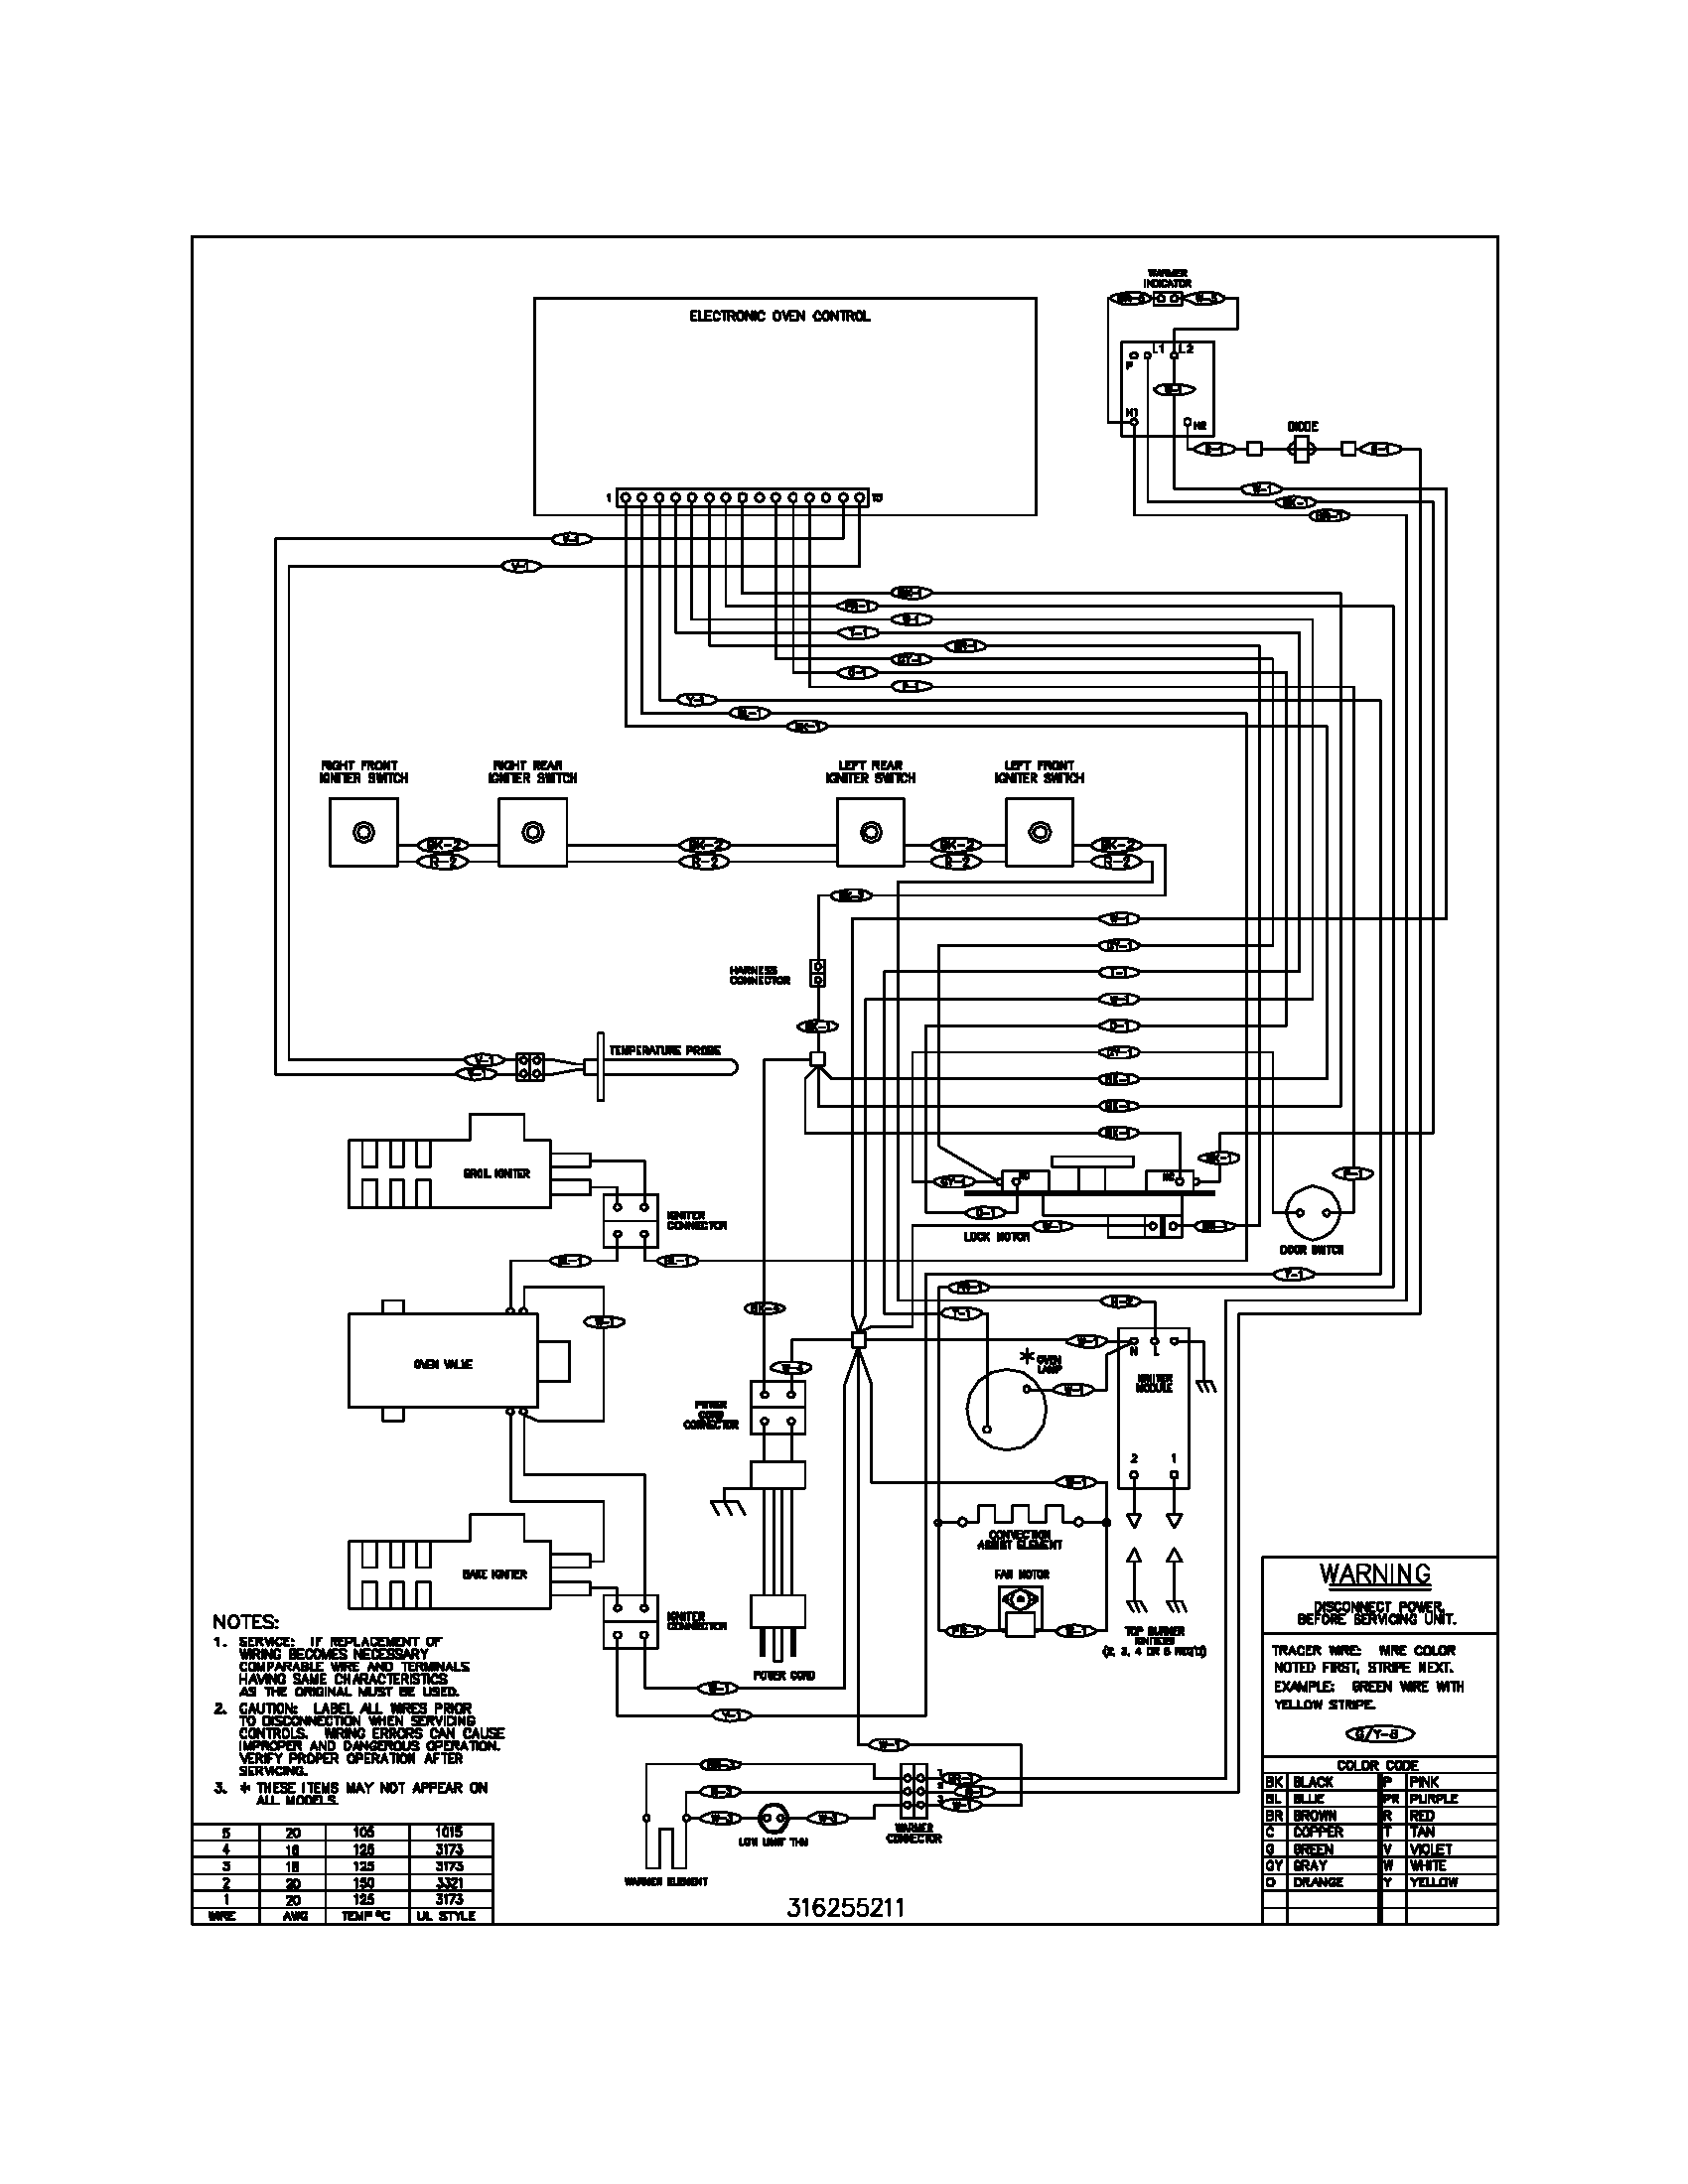 wiring diagram parts frigidaire plgf389ccc gas range timer stove clocks and appliance frigidaire freezer wiring diagram at n-0.co